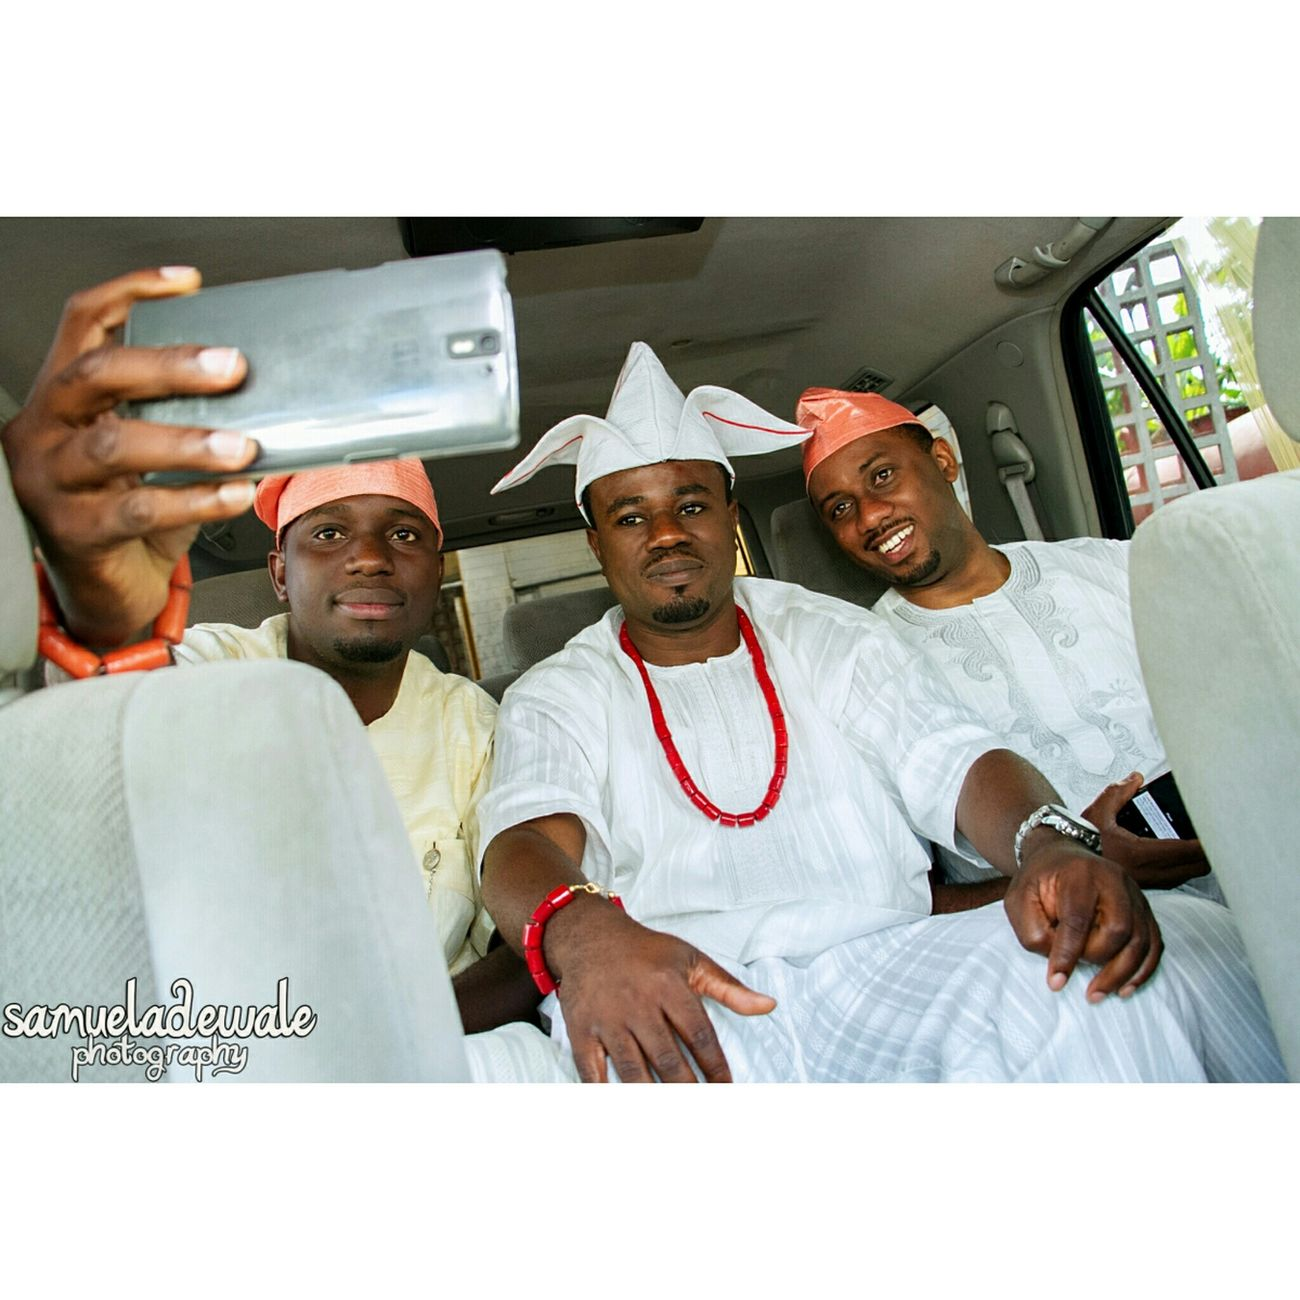 Goom and his friends taking selfie in the car. Groom Wedding Bridesmaides Groomsmen Groomsman Wedding Photography Picoftheday Photooftheday